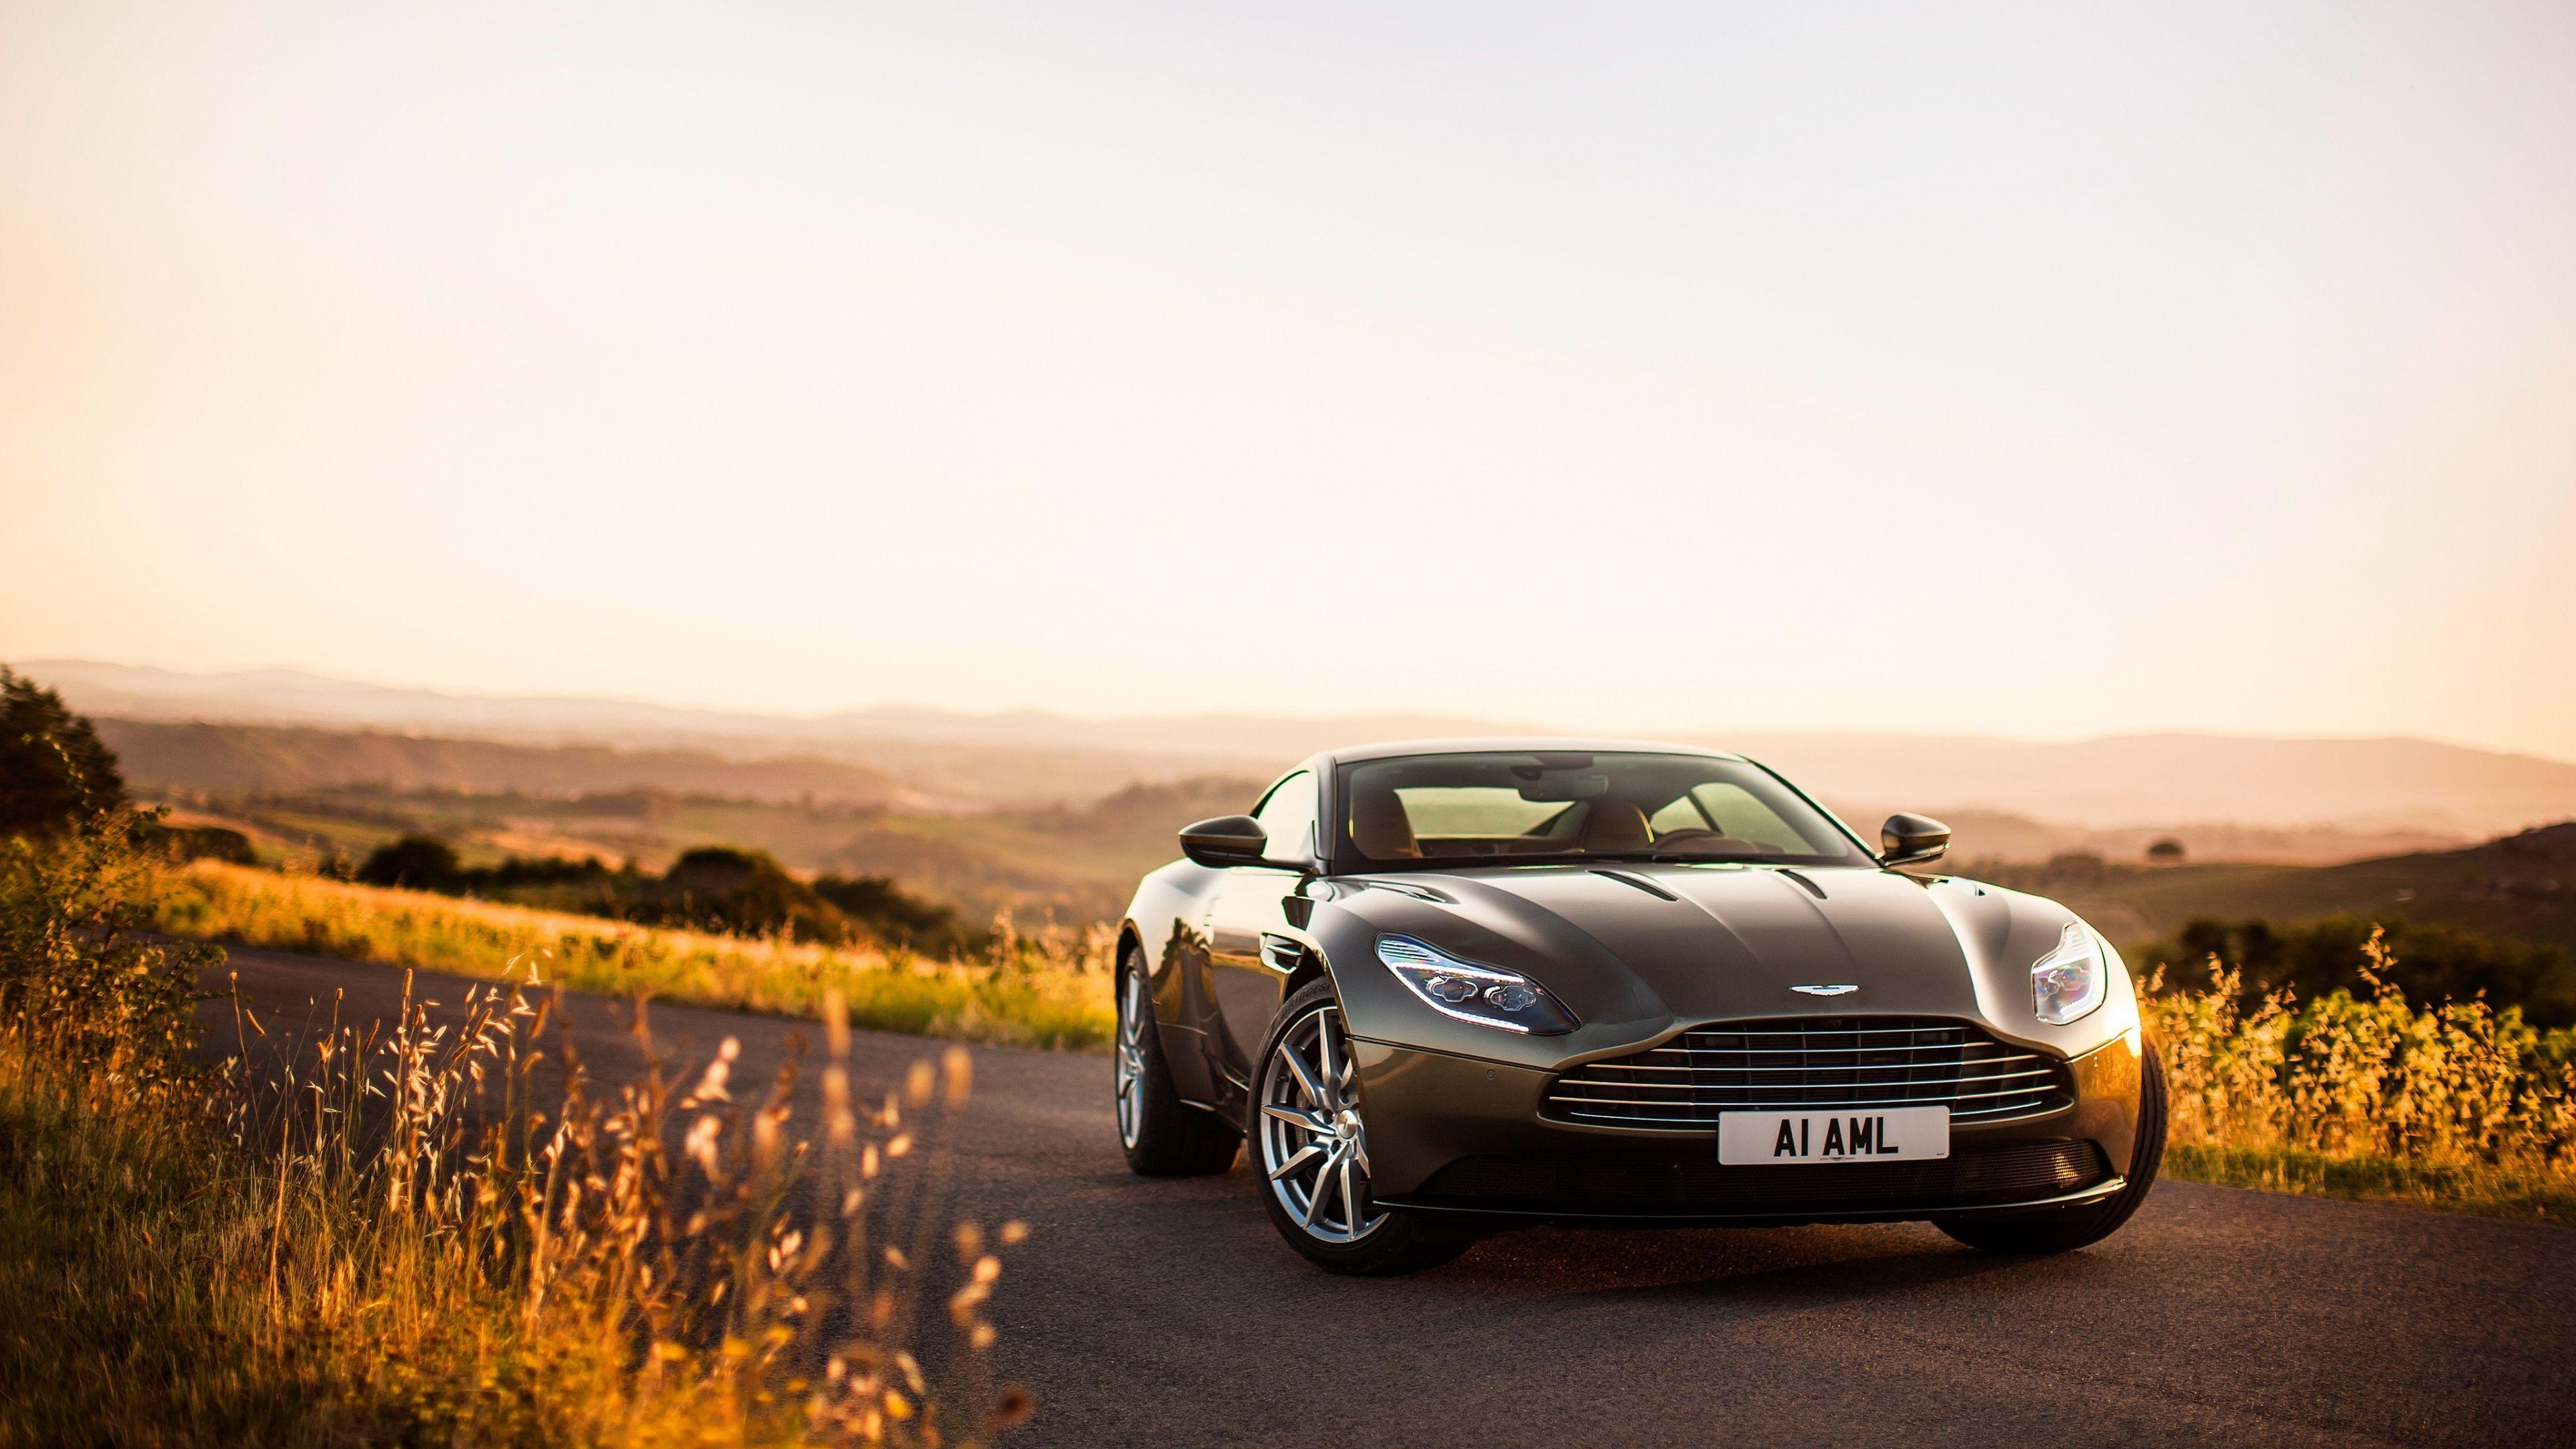 Download Wallpapers 3840x2160 Aston martin, Db11, Front view 4K